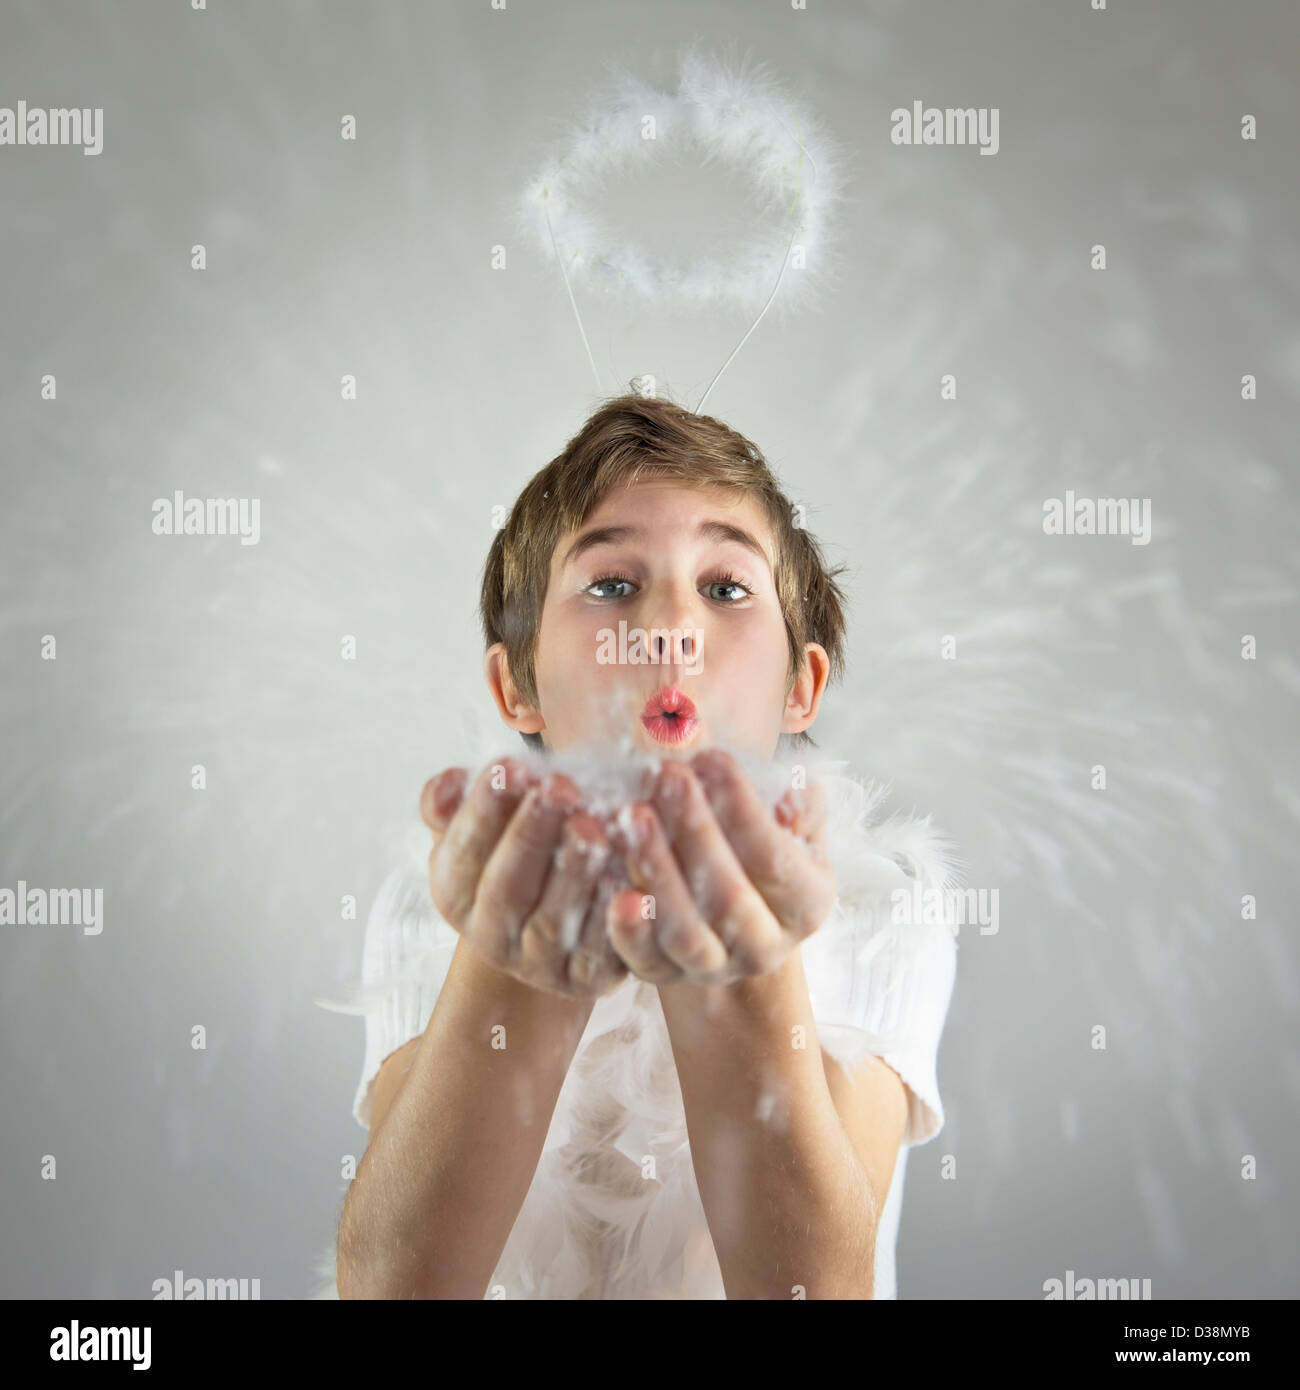 Boy with halo blowing handful of snow - Stock Image